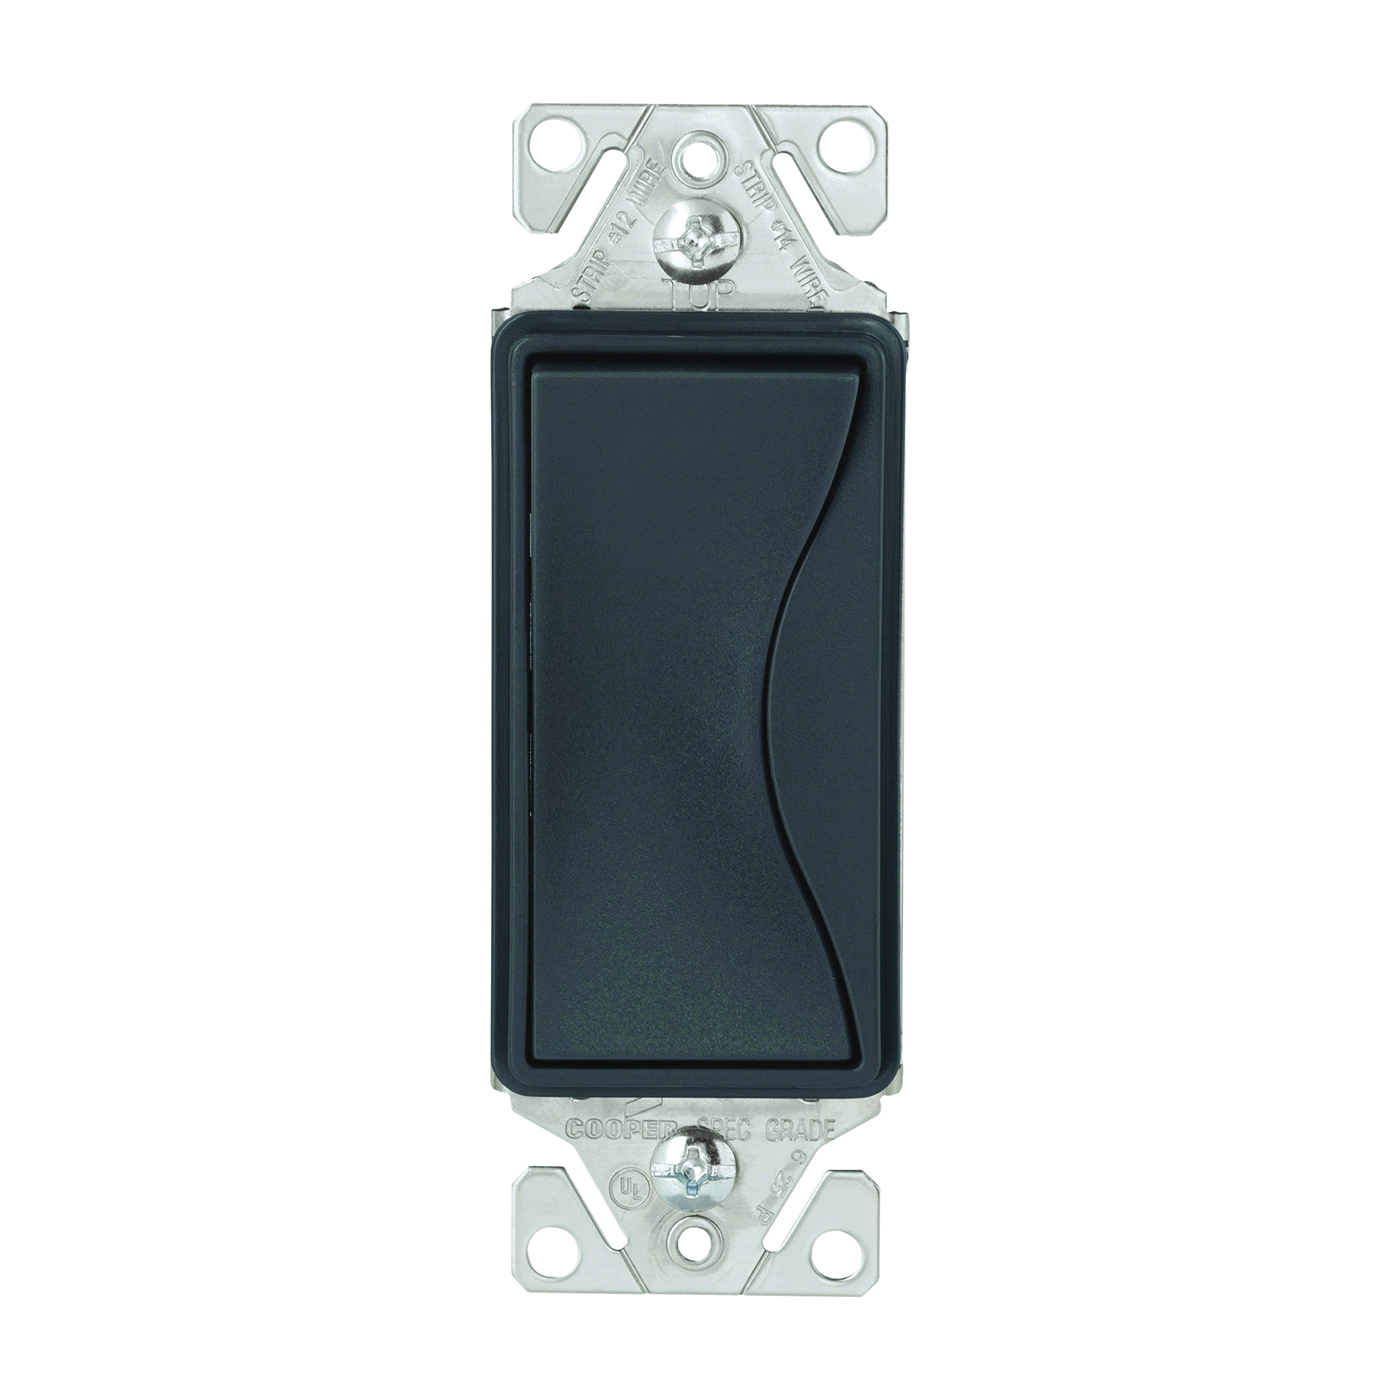 Picture of Eaton Wiring Devices ASPIRE 9501SG Rocker Switch, 15 A, 120/277 V, Single-Pole, Push-In Terminal, Silver Granite